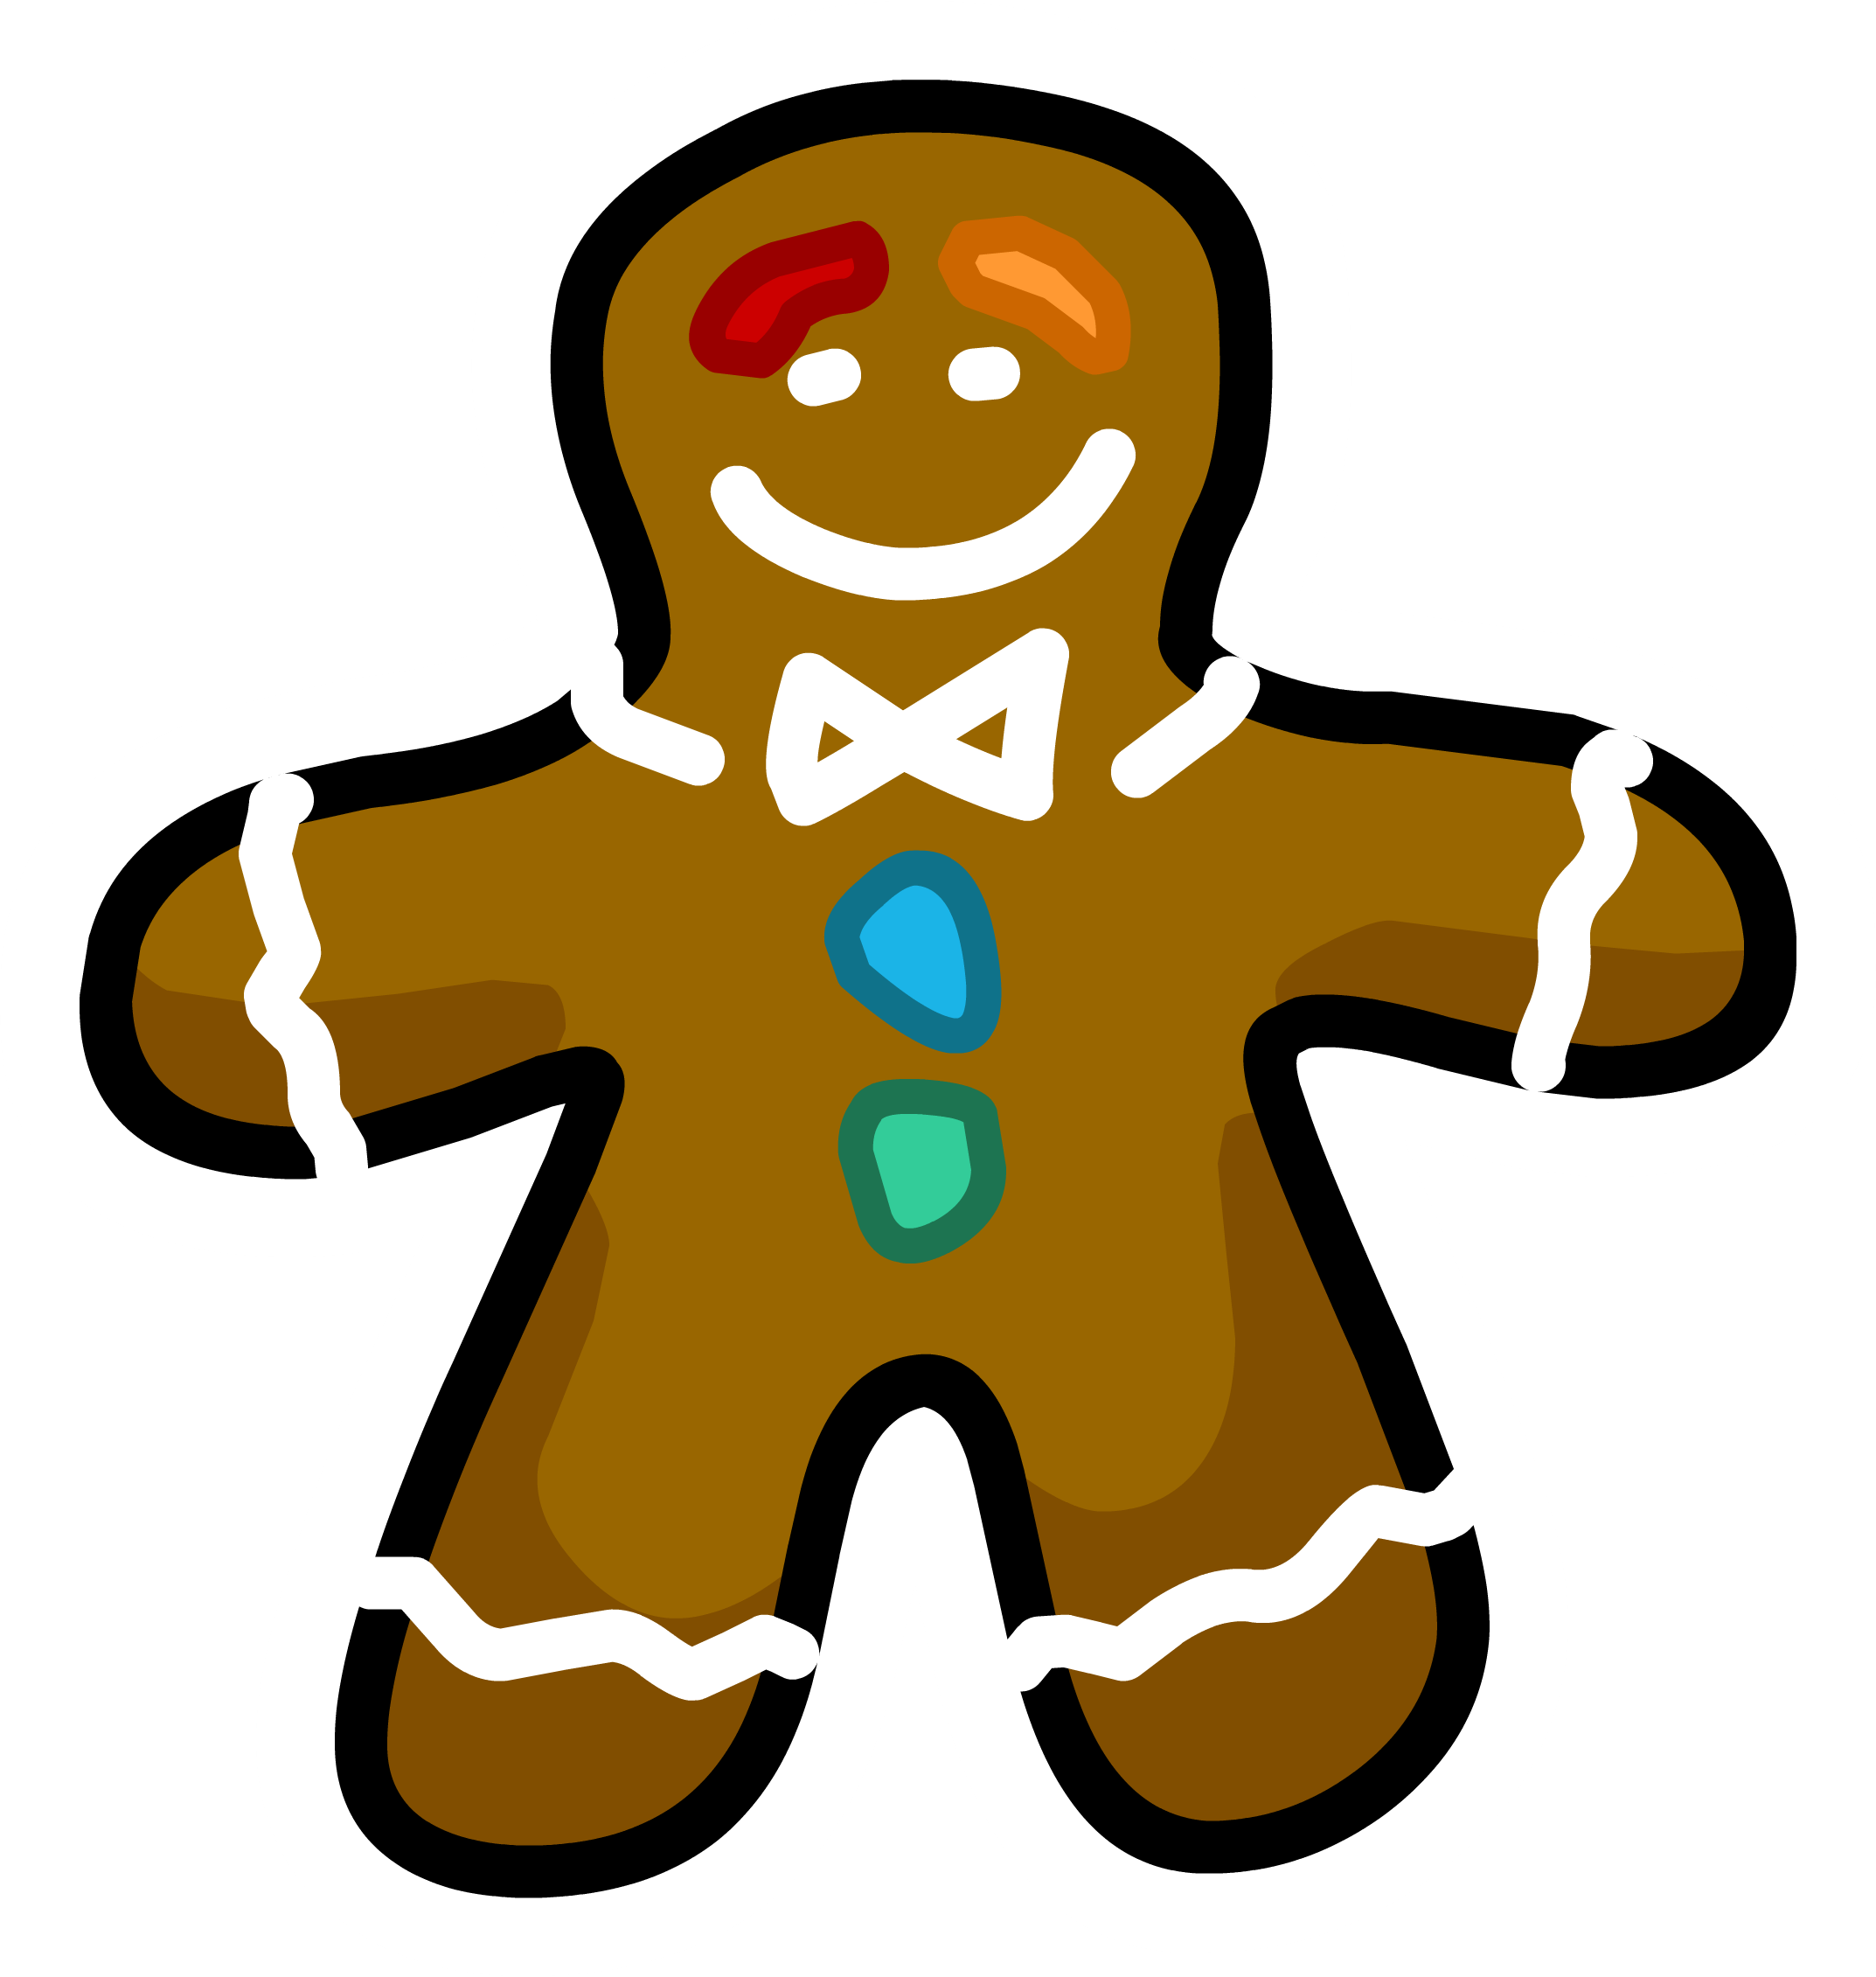 Gingerbread clipart horizontal. Image man pin png